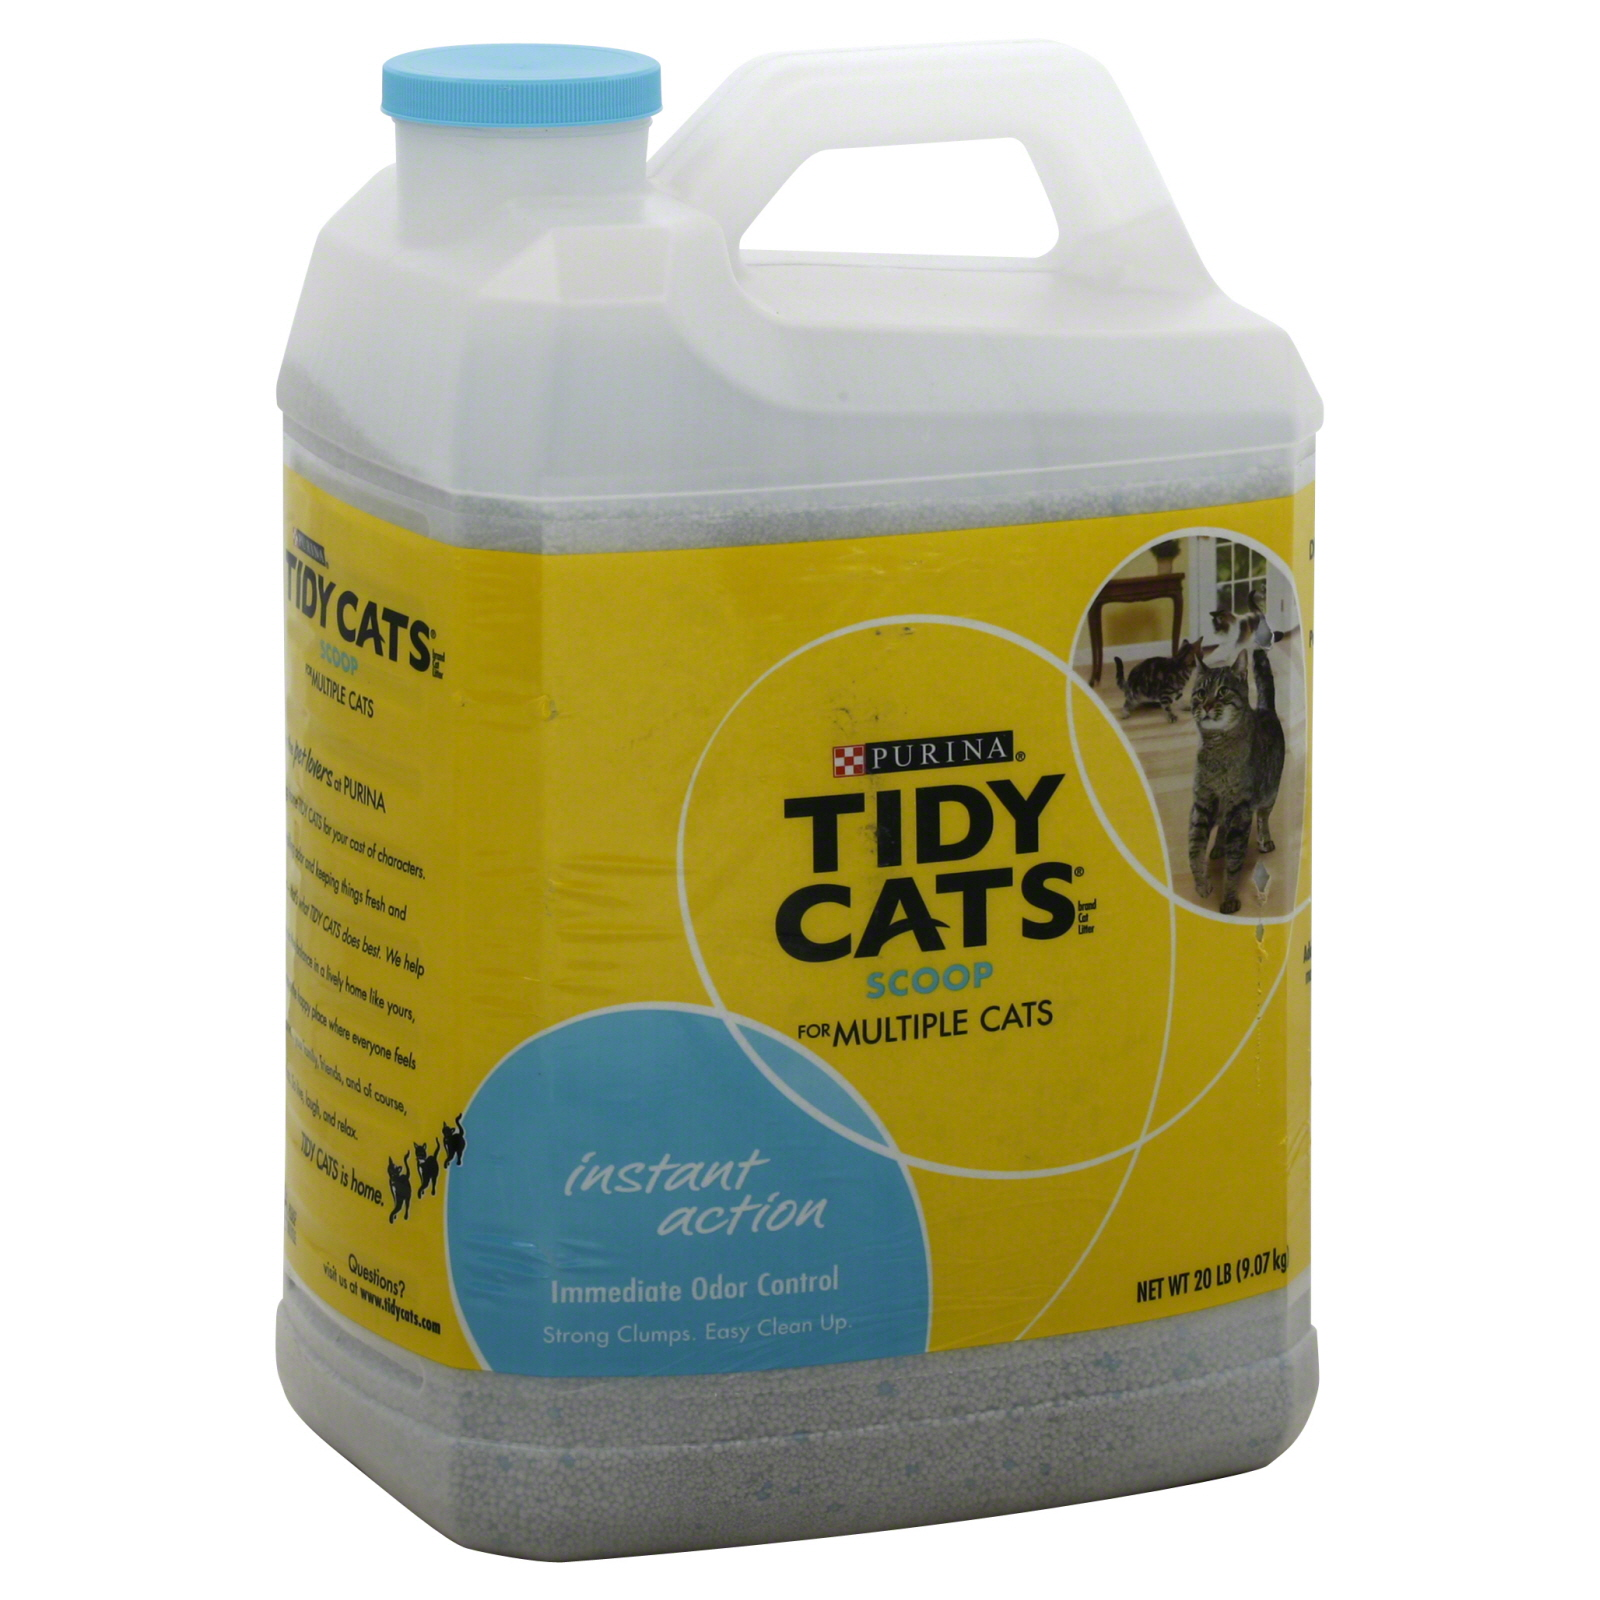 Instant Action Cat Litter, Scoop, for Multiple Cats, 20 lb (9.07 kg)